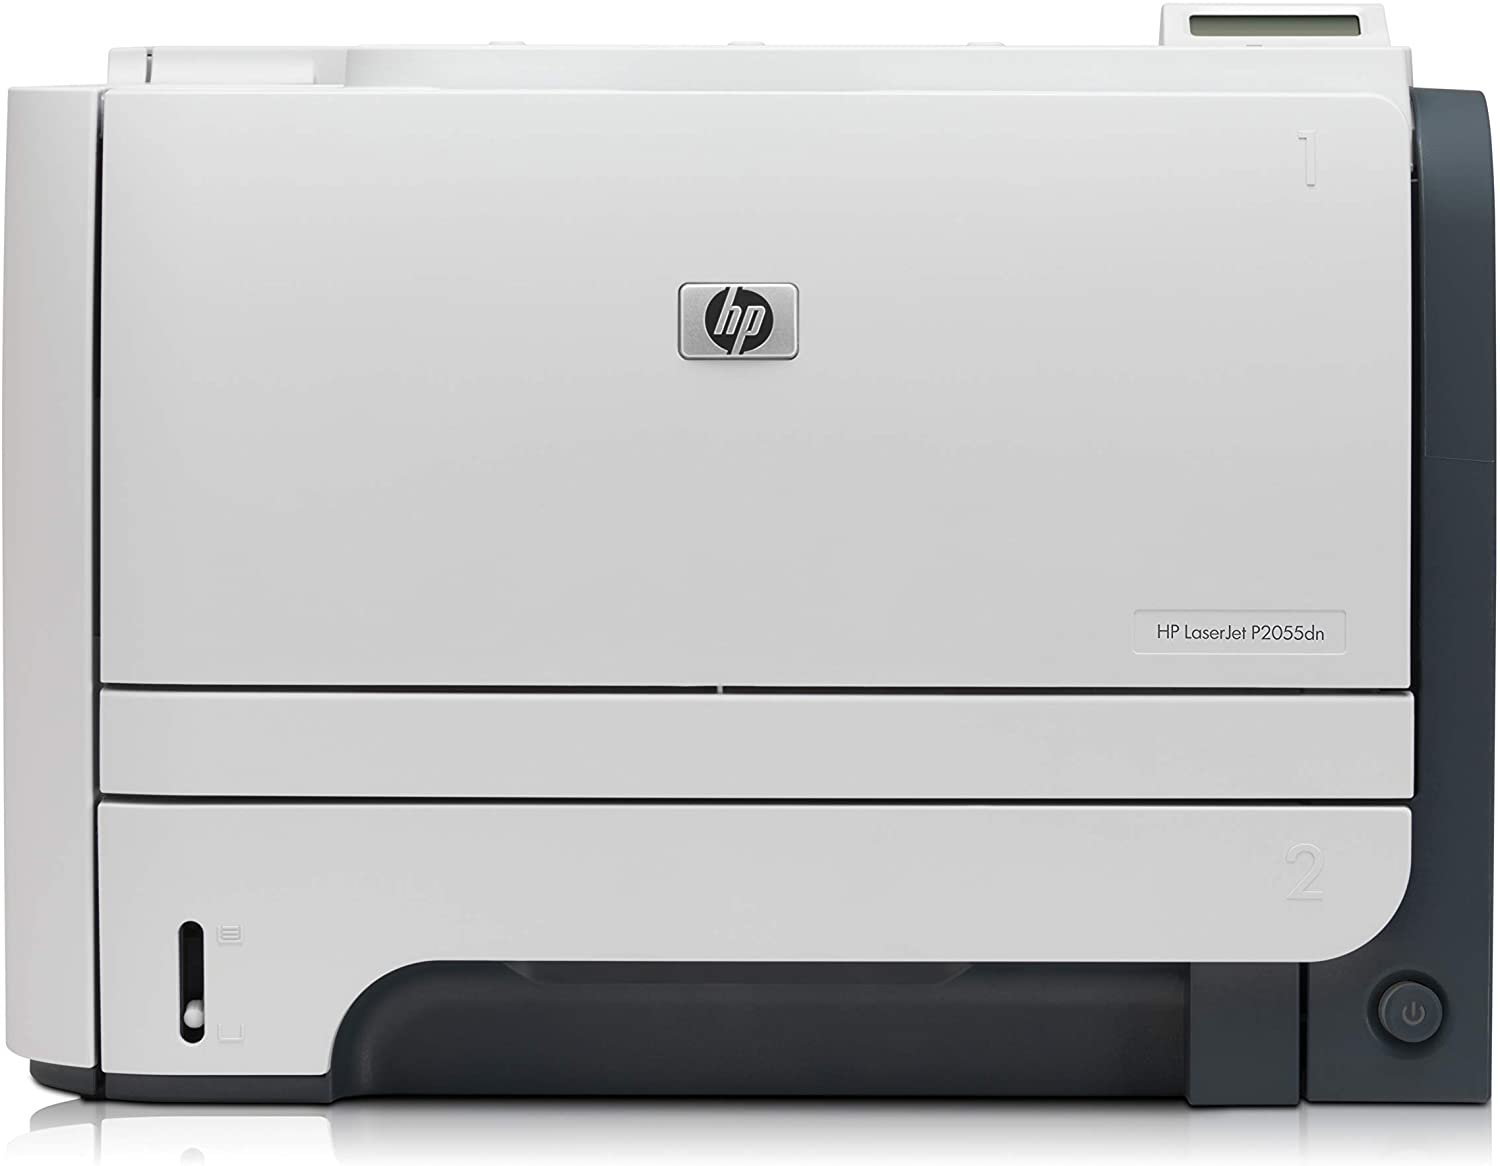 HP LaserJet P2055dn Workgroup Laser Printer Network - CE459A (Renewed)